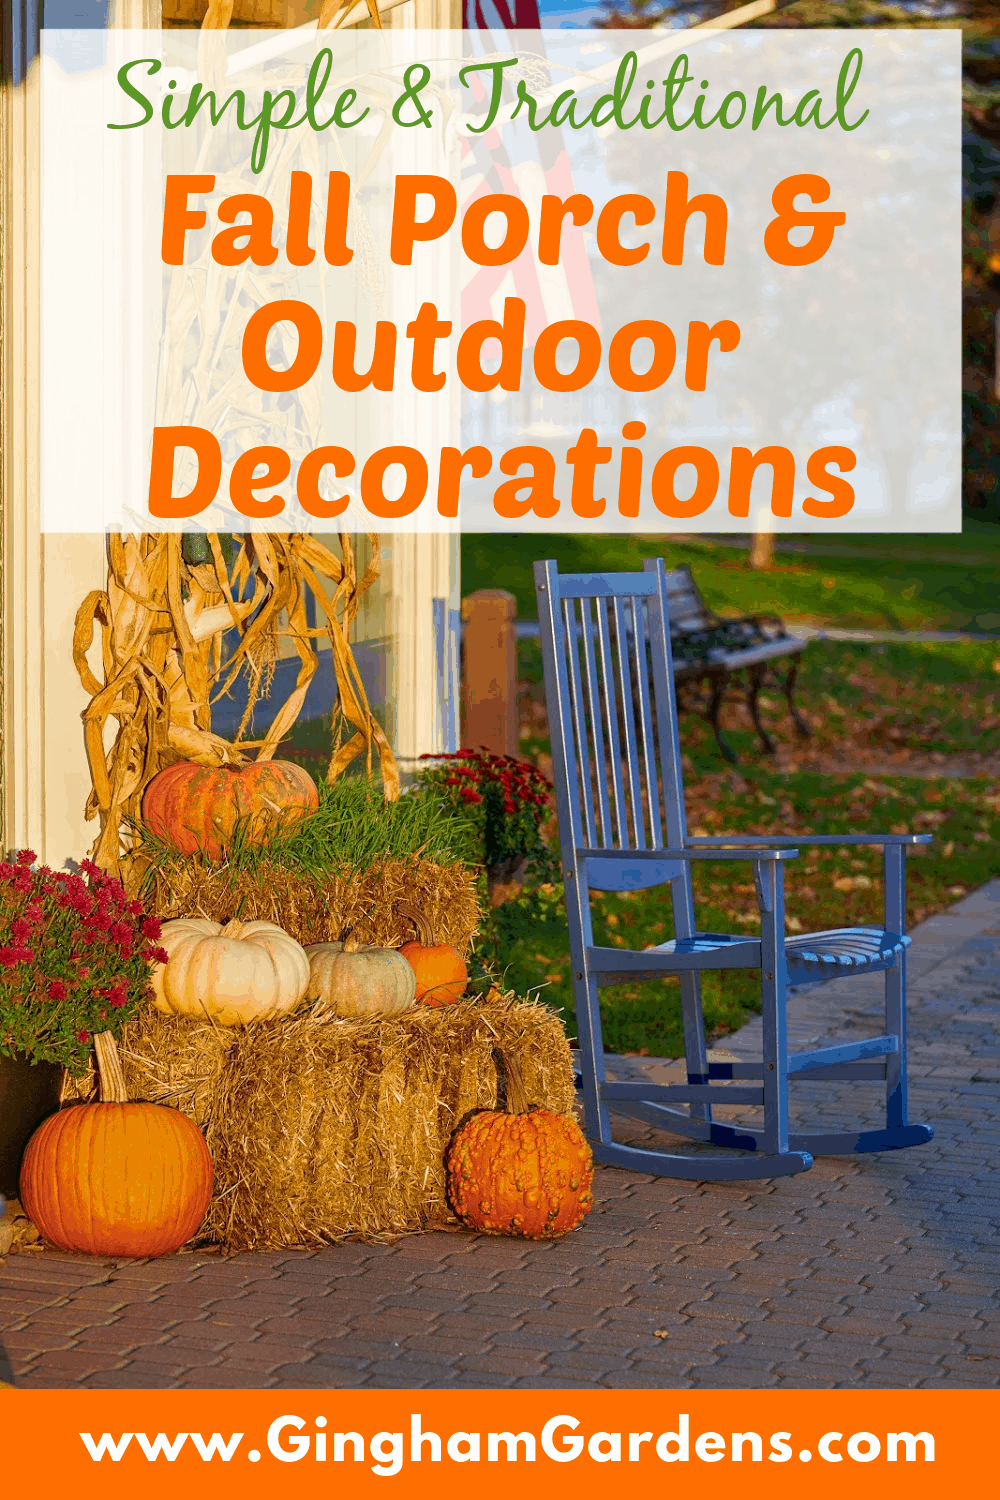 Image of Outdoor Fall Display with text overlay - Fall Porch & Outdoor Decorations